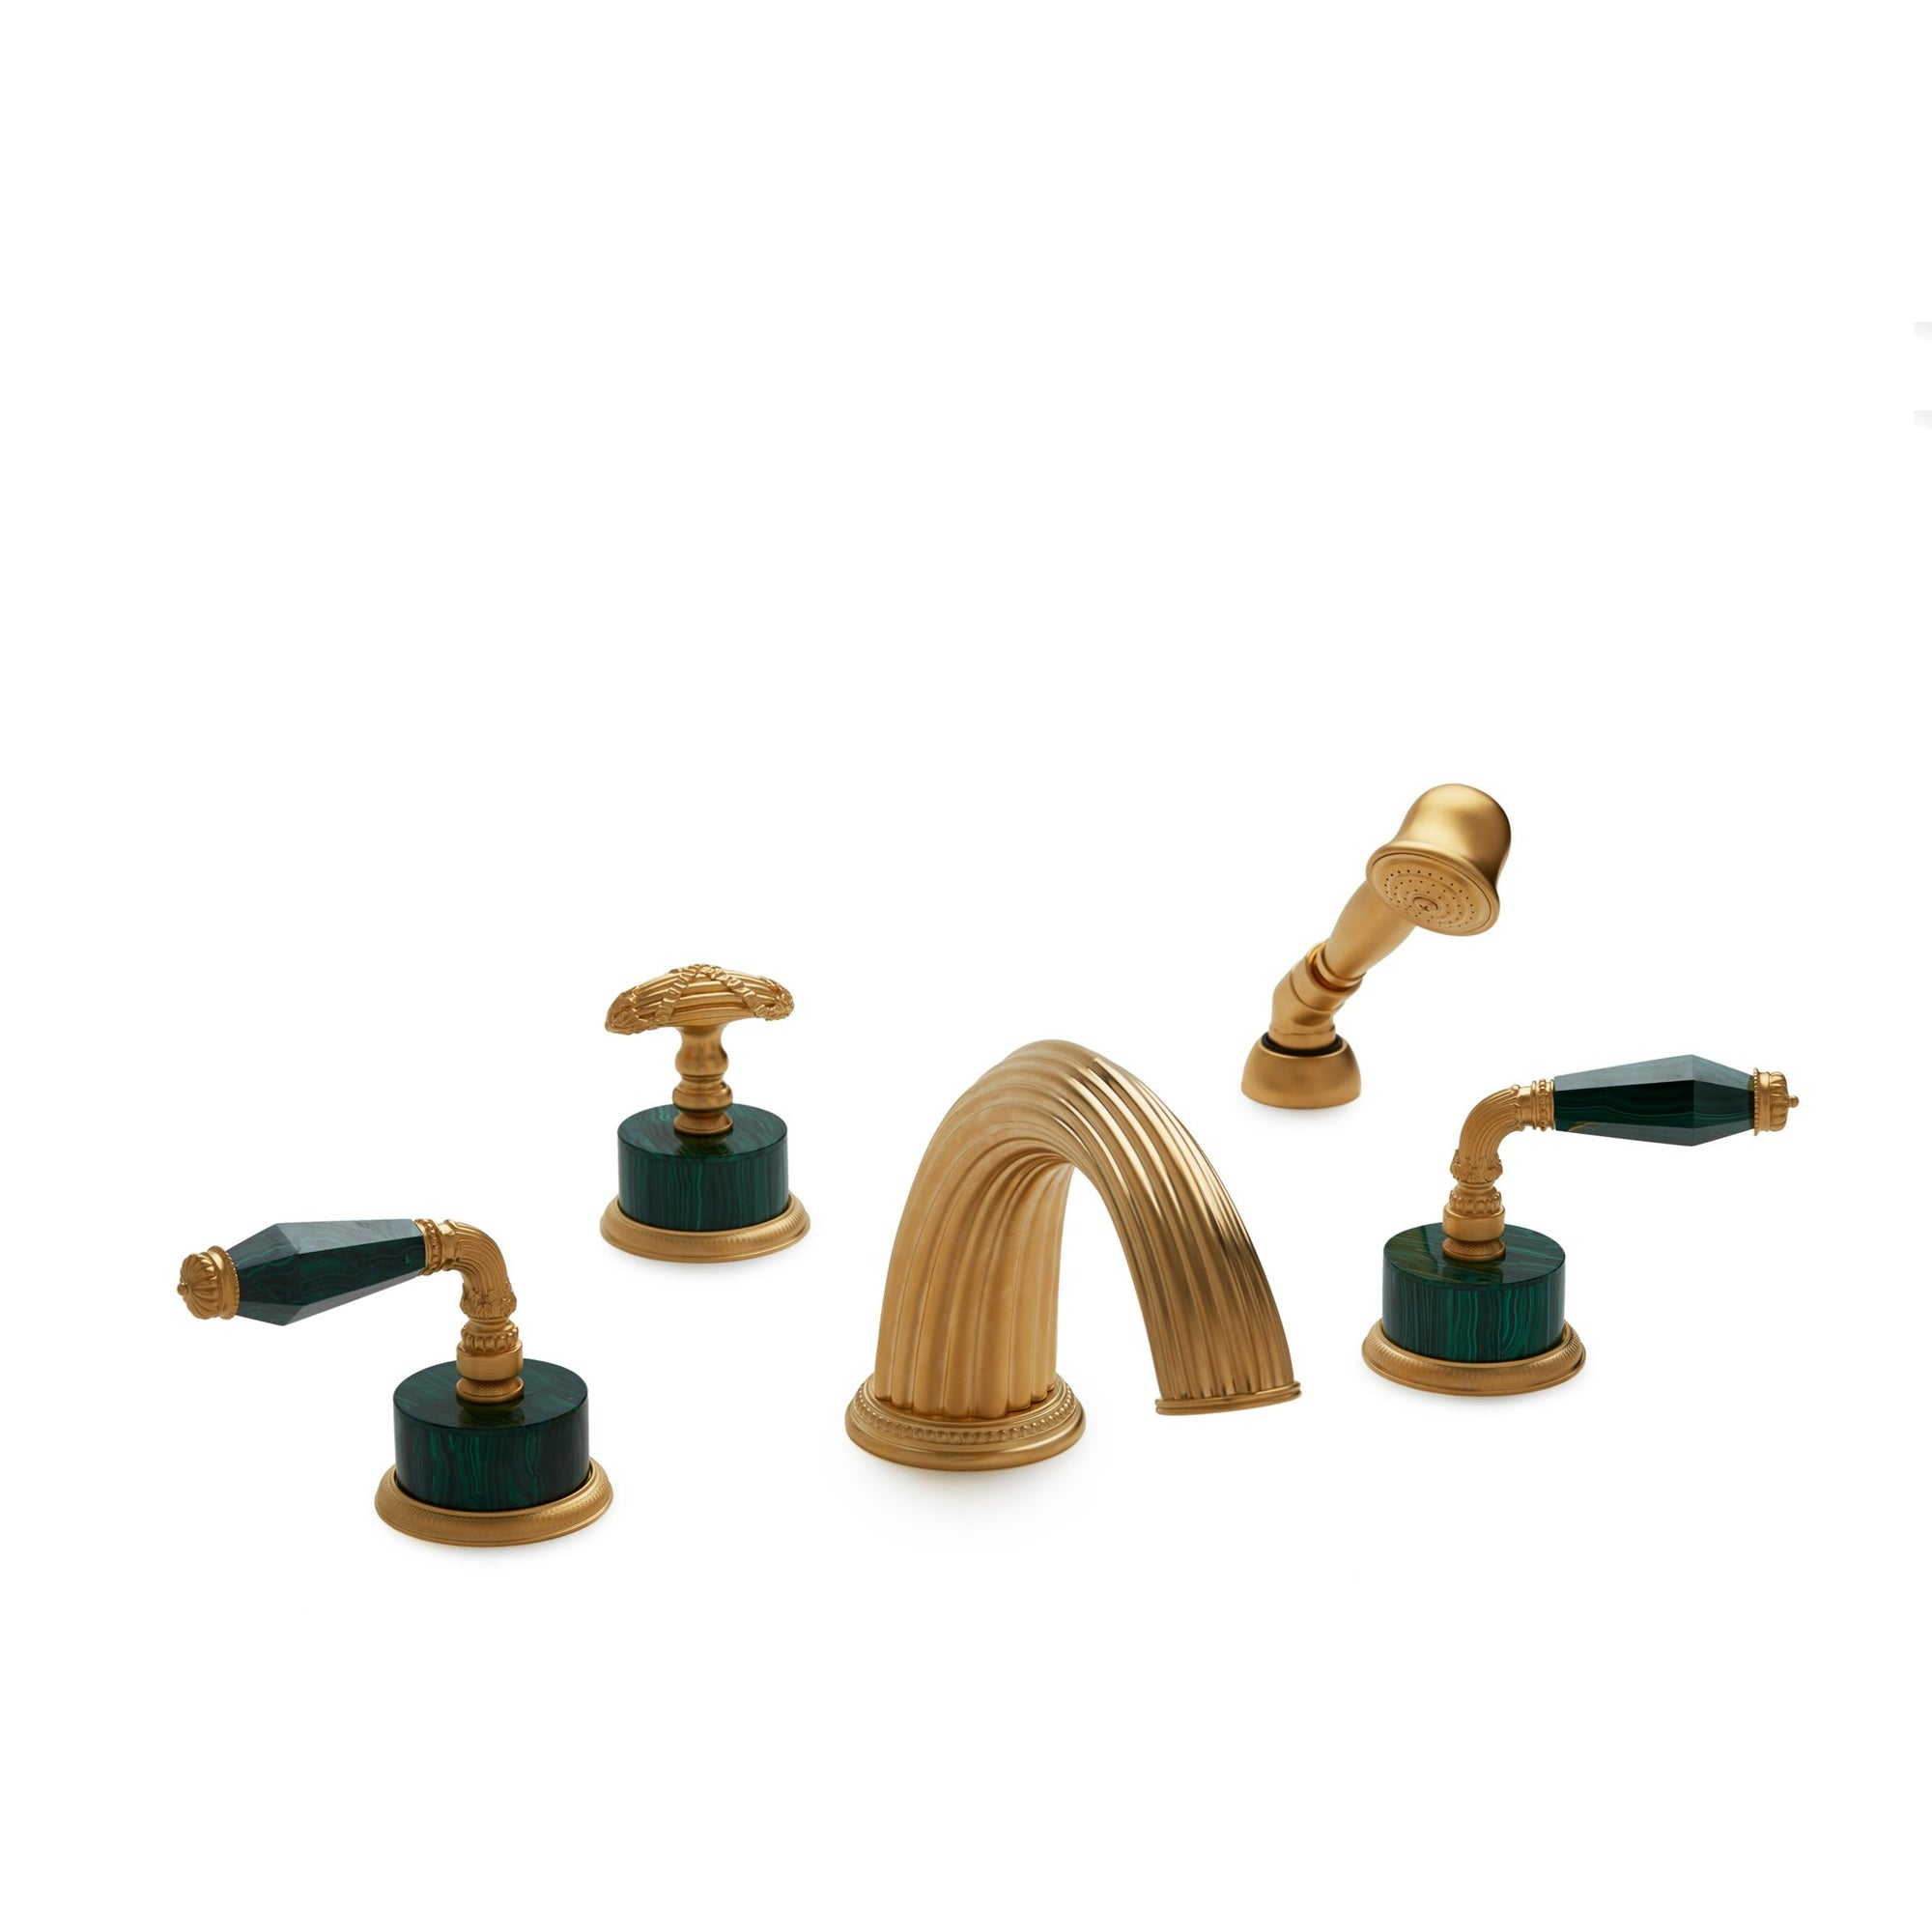 1029DTS813-MALA-GP Sherle Wagner International Semiprecious Fluted Lever Deck Mount Tub Set with Hand Shower in Gold Plate metal finish with Malachite Semiprecious inserts